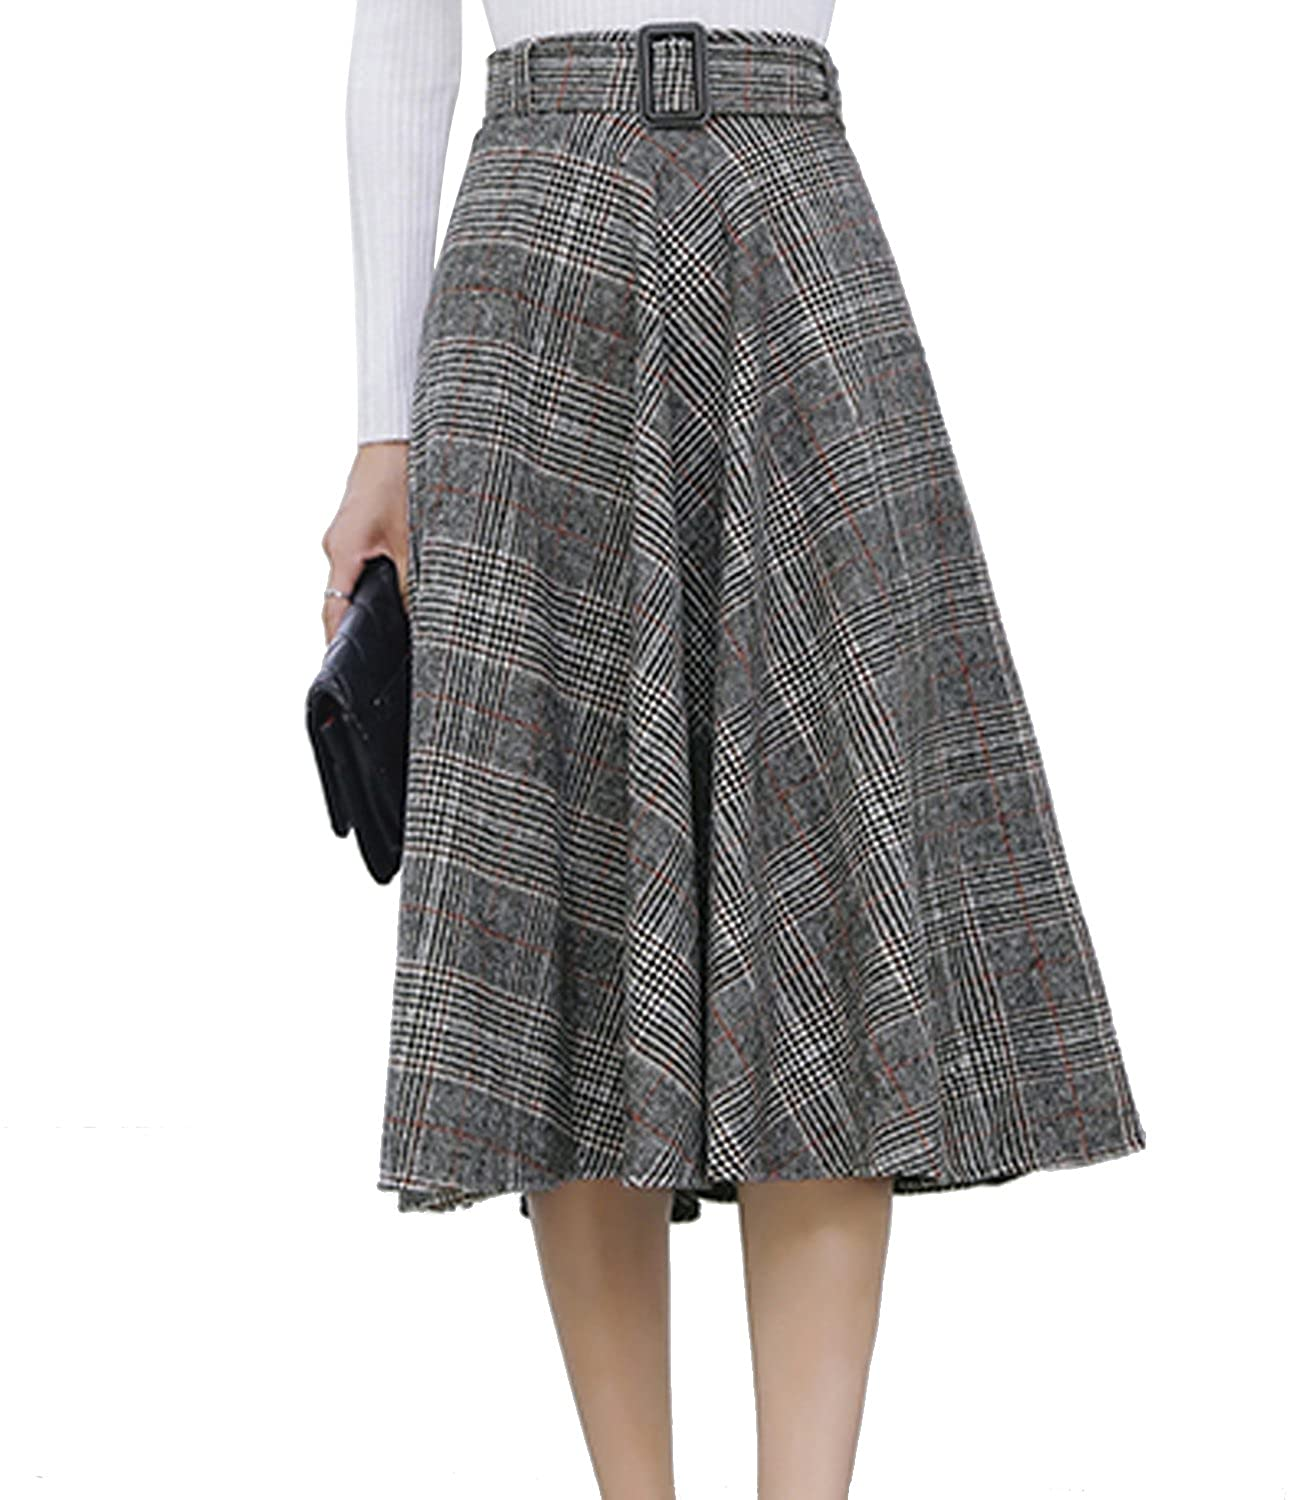 1900-1910s Clothing Sanifer Womens Warm Woolen Plaid Gray Pleated A Line Skirt with Belt $27.99 AT vintagedancer.com